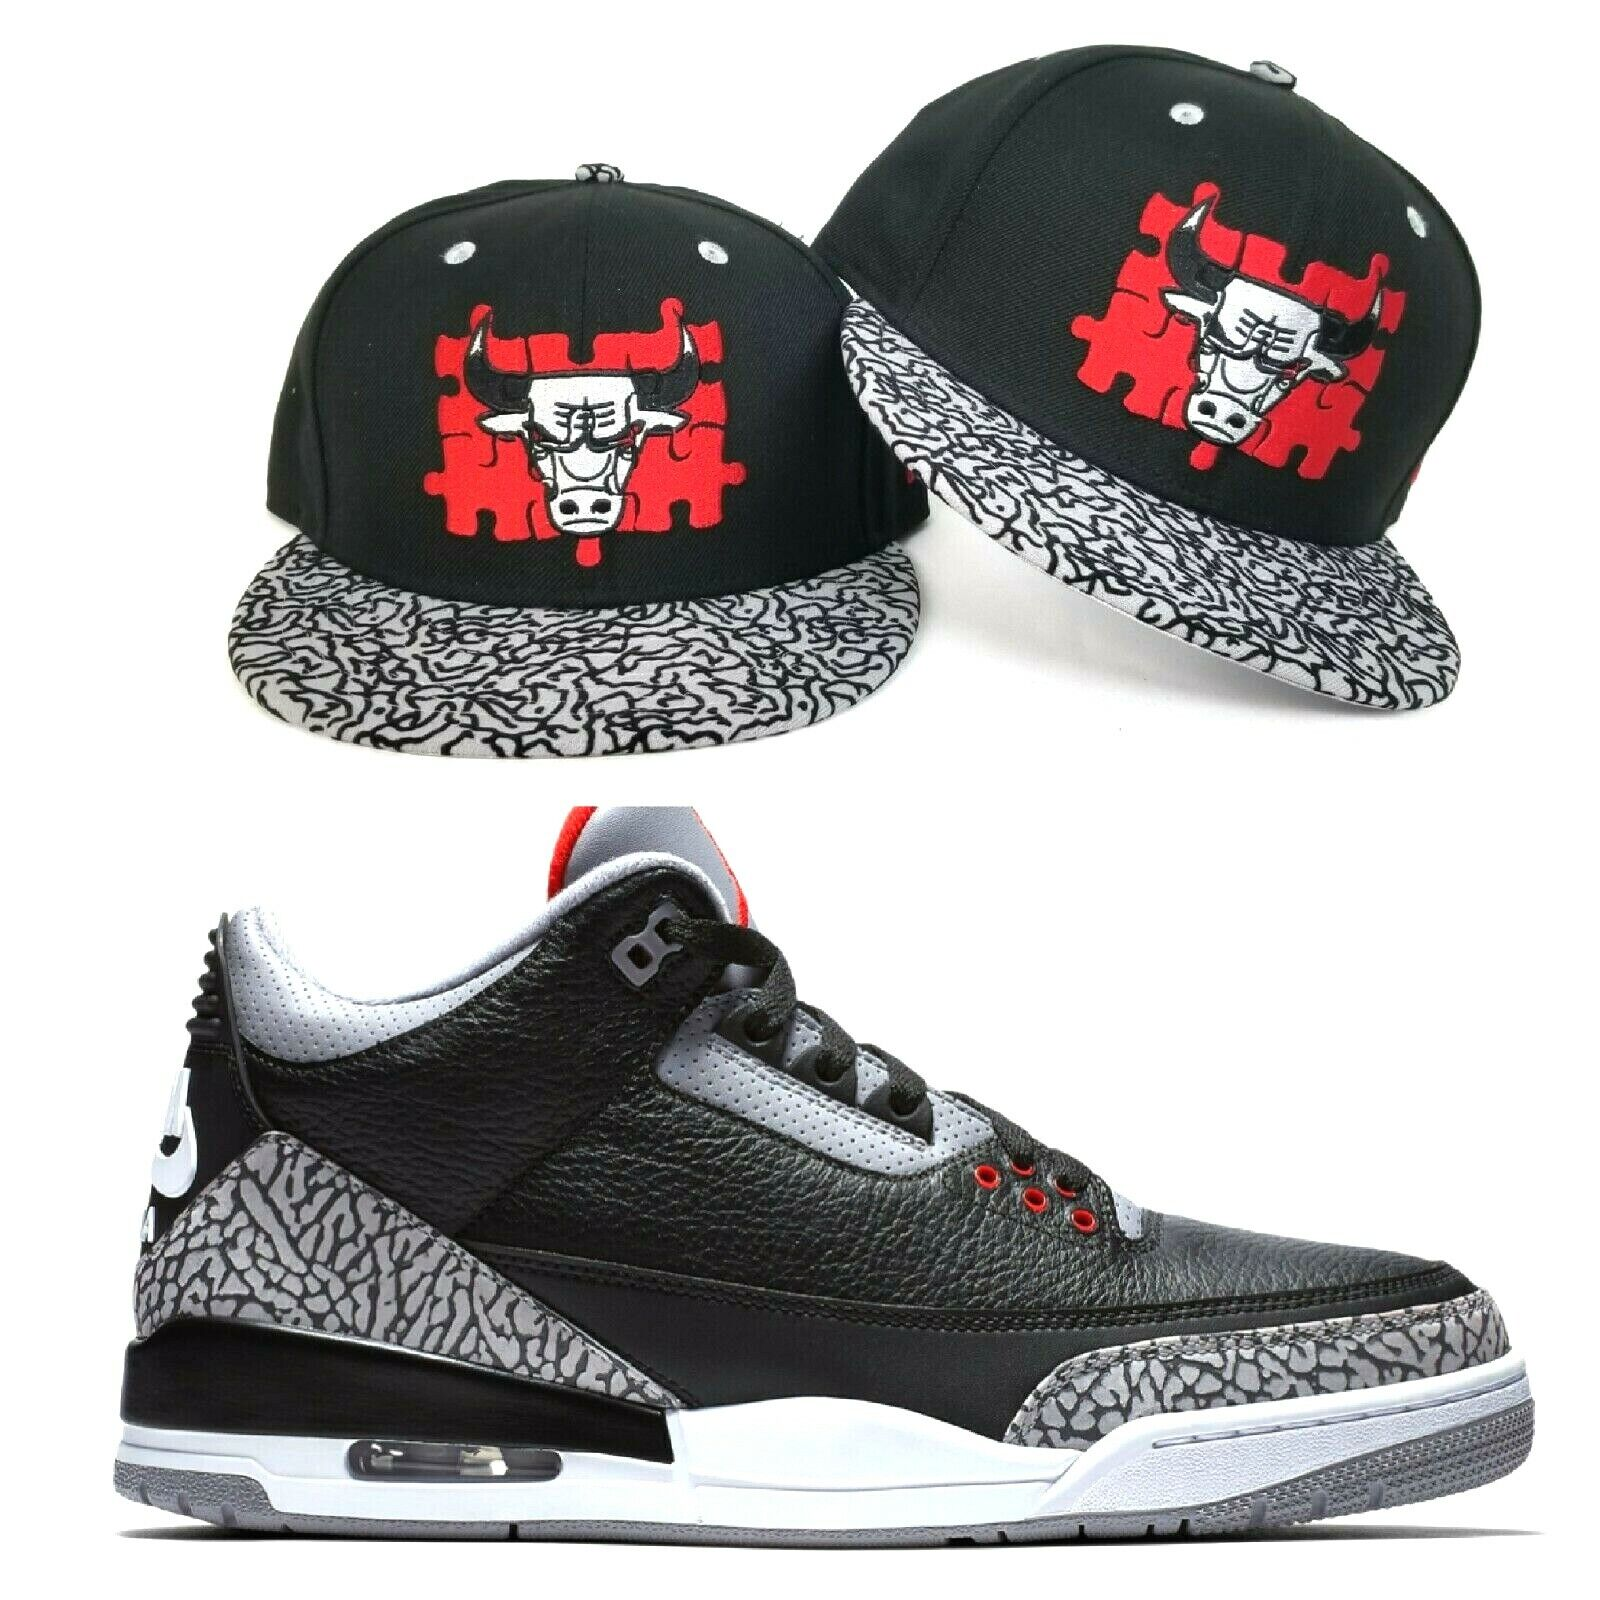 e06845a3 Details about New Era Chicago Bulls snapback hat Jordan 3 Black Cement